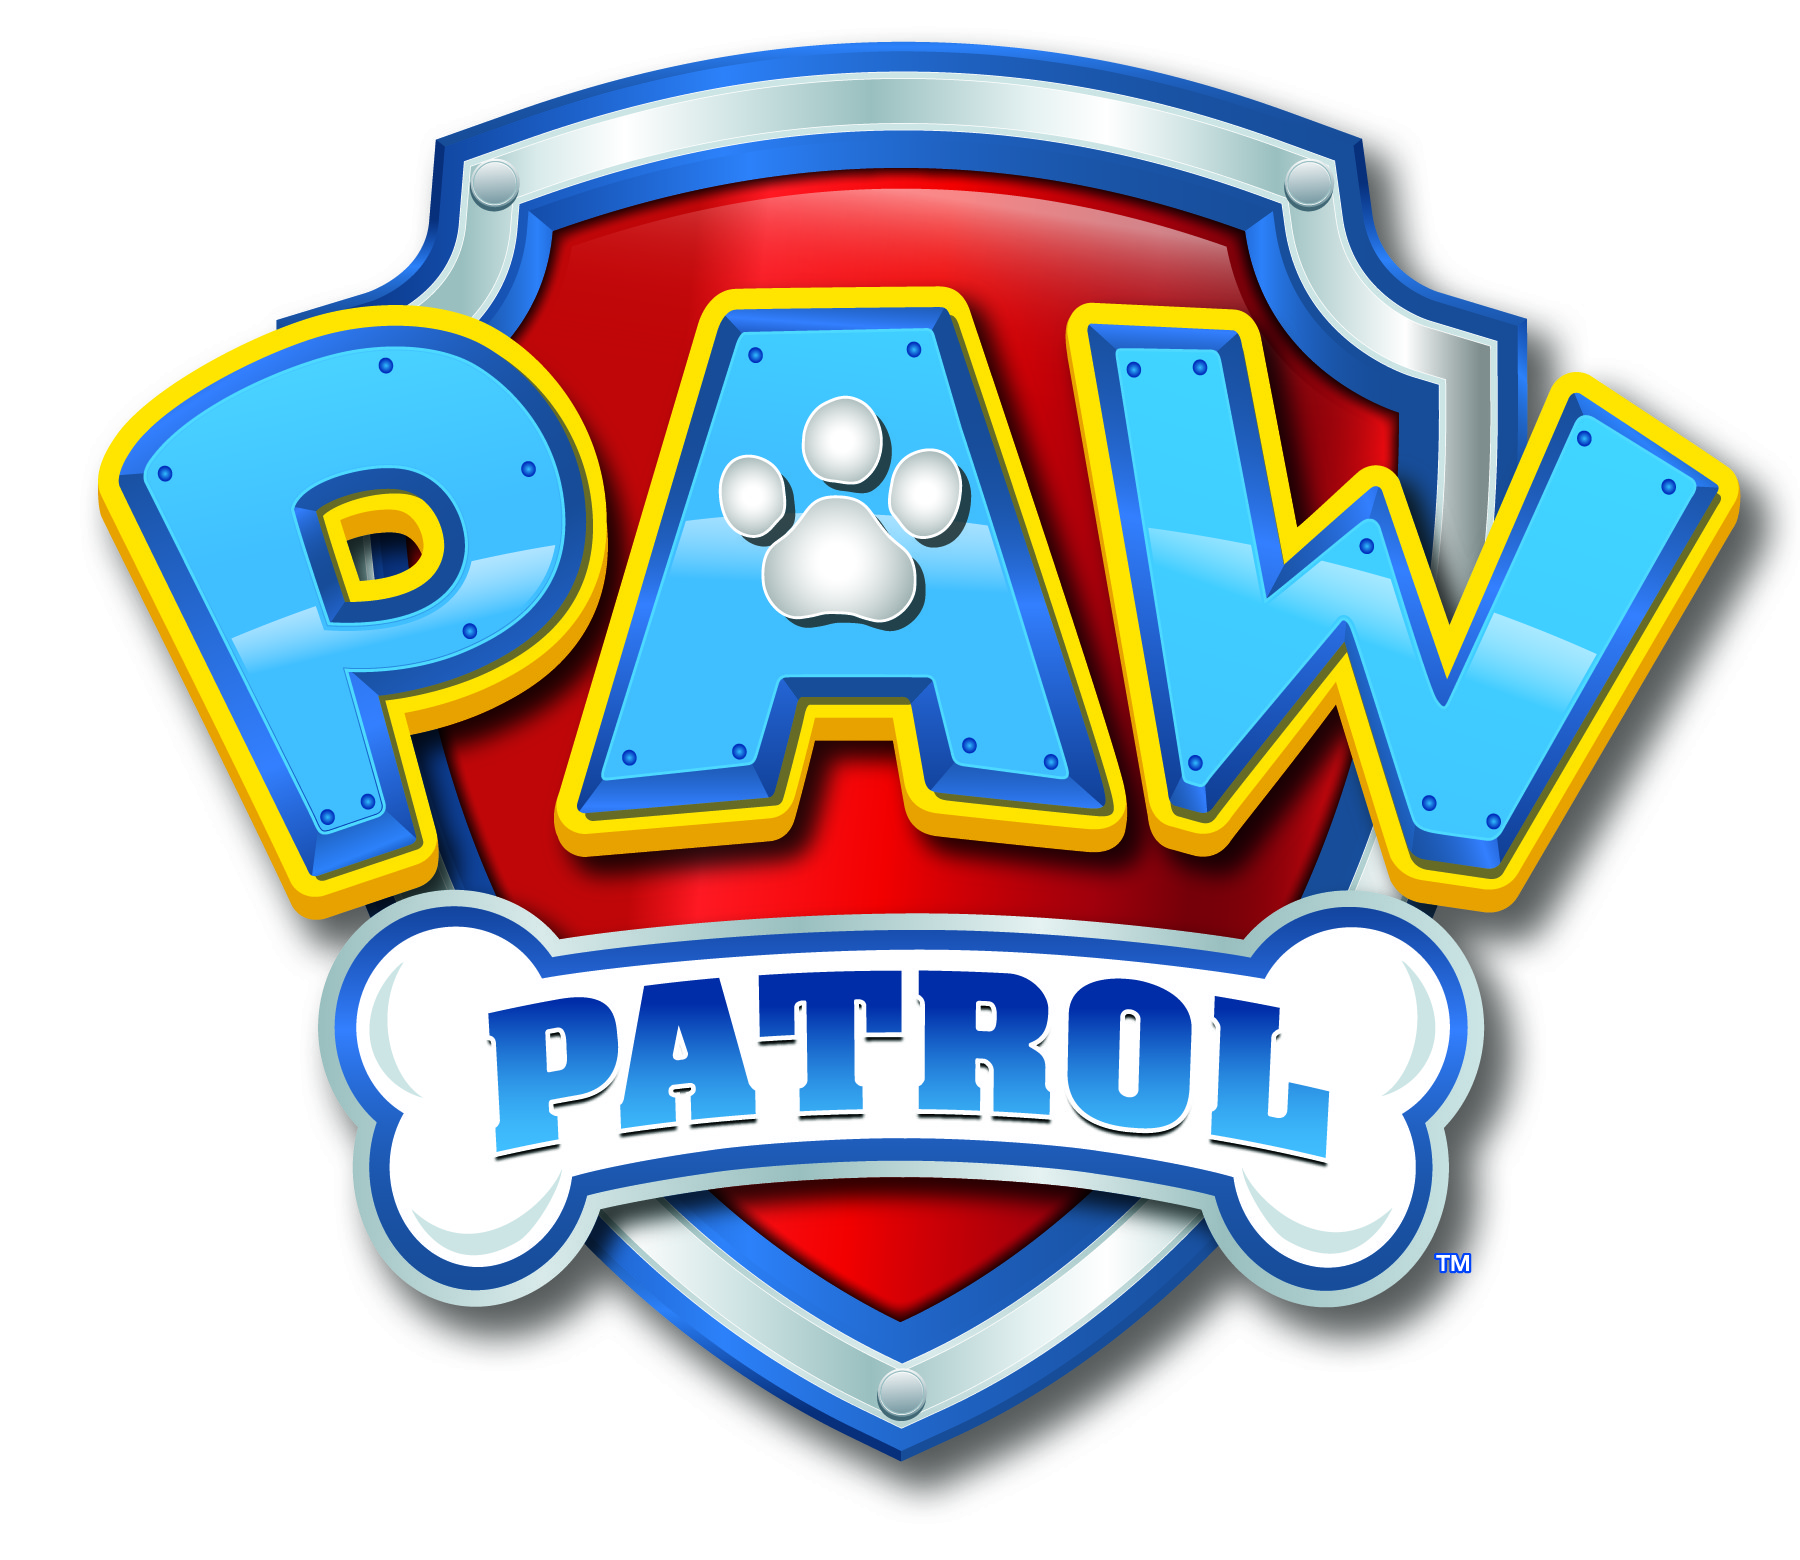 Paw Patrol Toy Line At-Paw Patrol Toy Line At-12